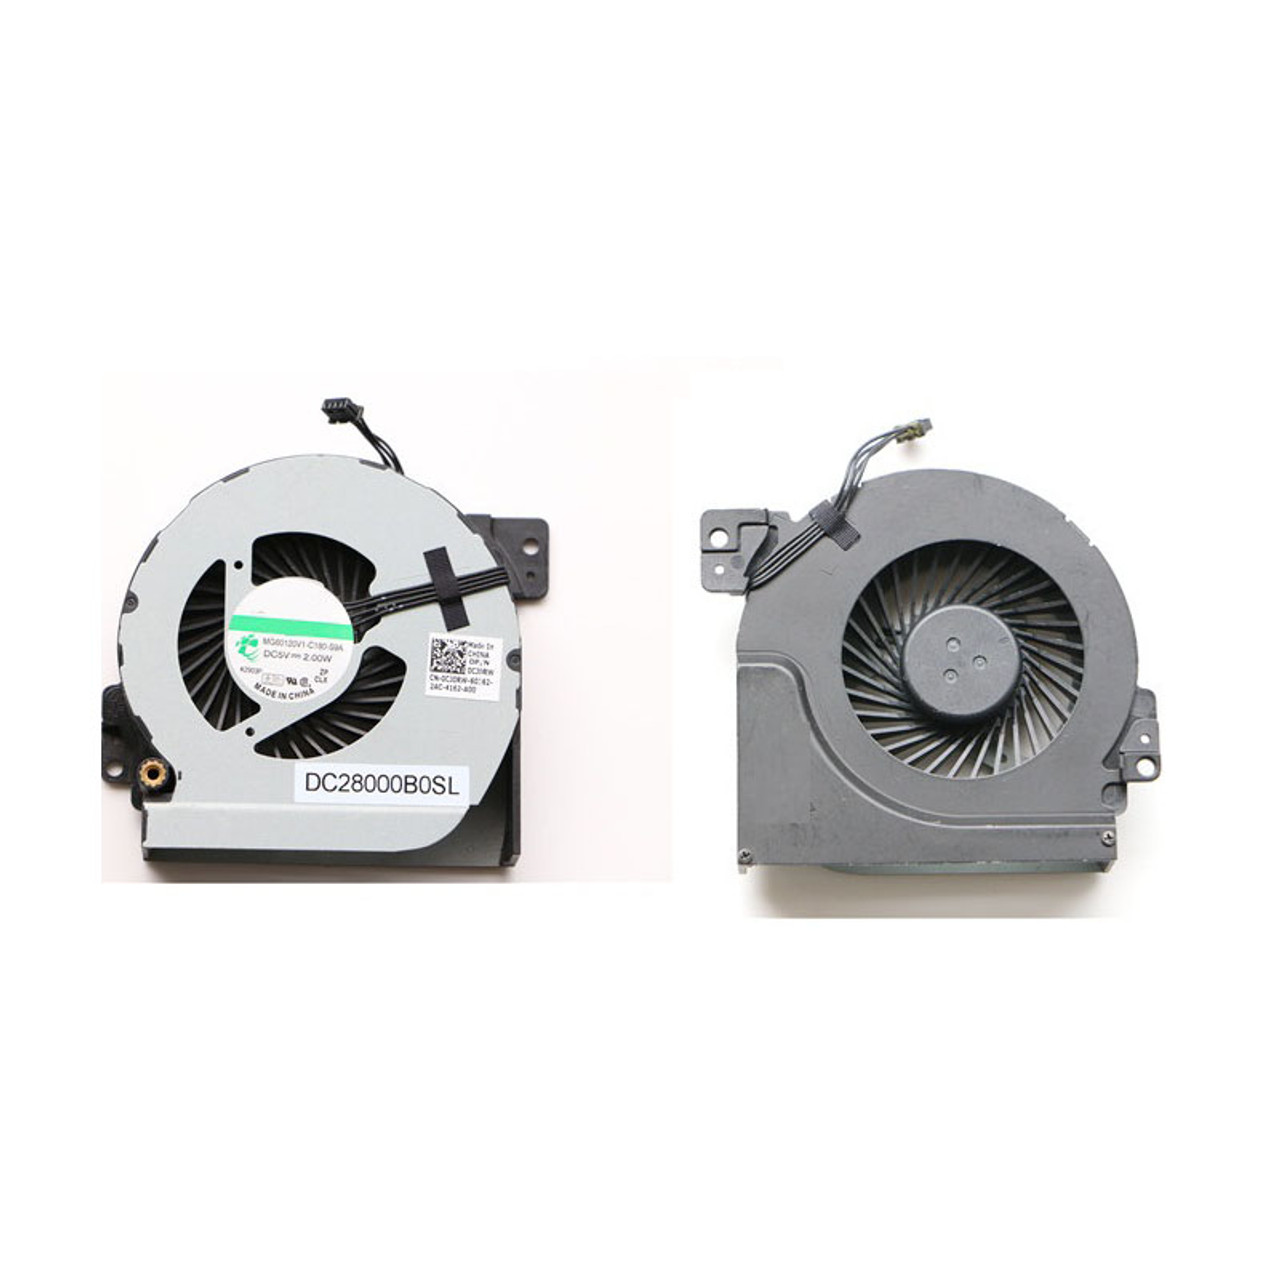 New CPU Cooling Fan for Dell Precision M6700 M5700 26PND 026PND Laptop